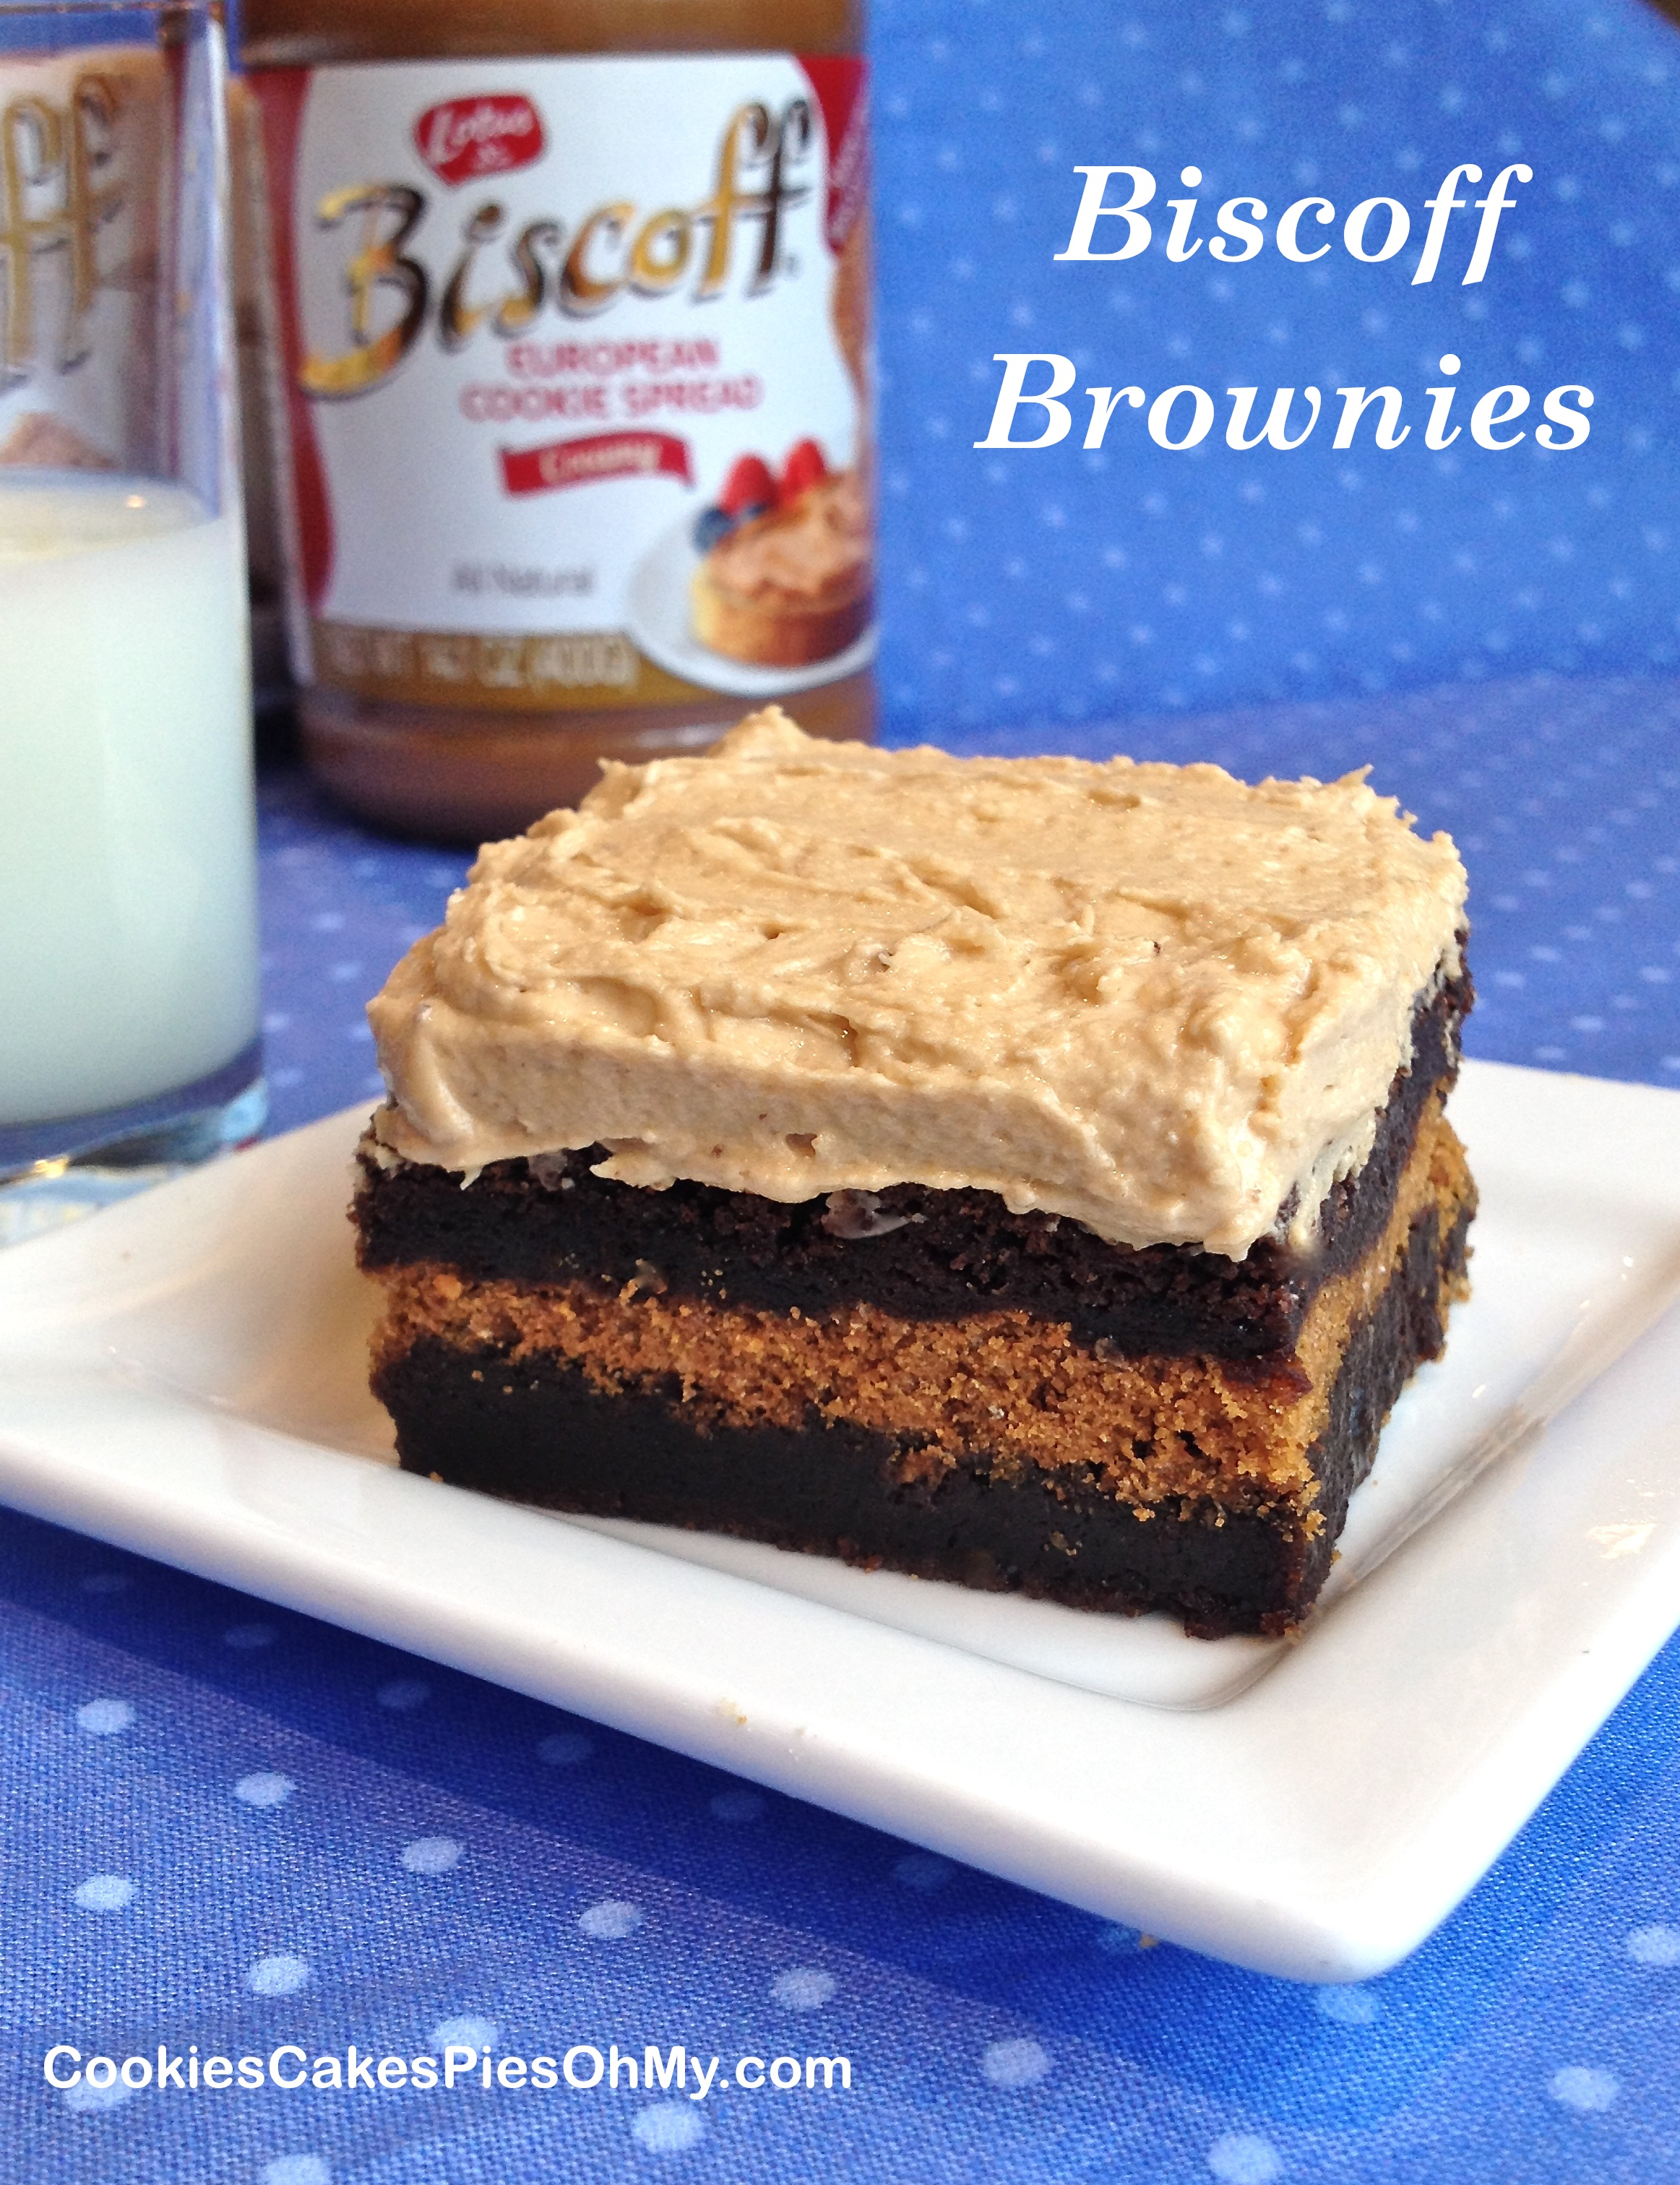 Biscoff Brownies with Biscoff Cookie Spread Frosting ...